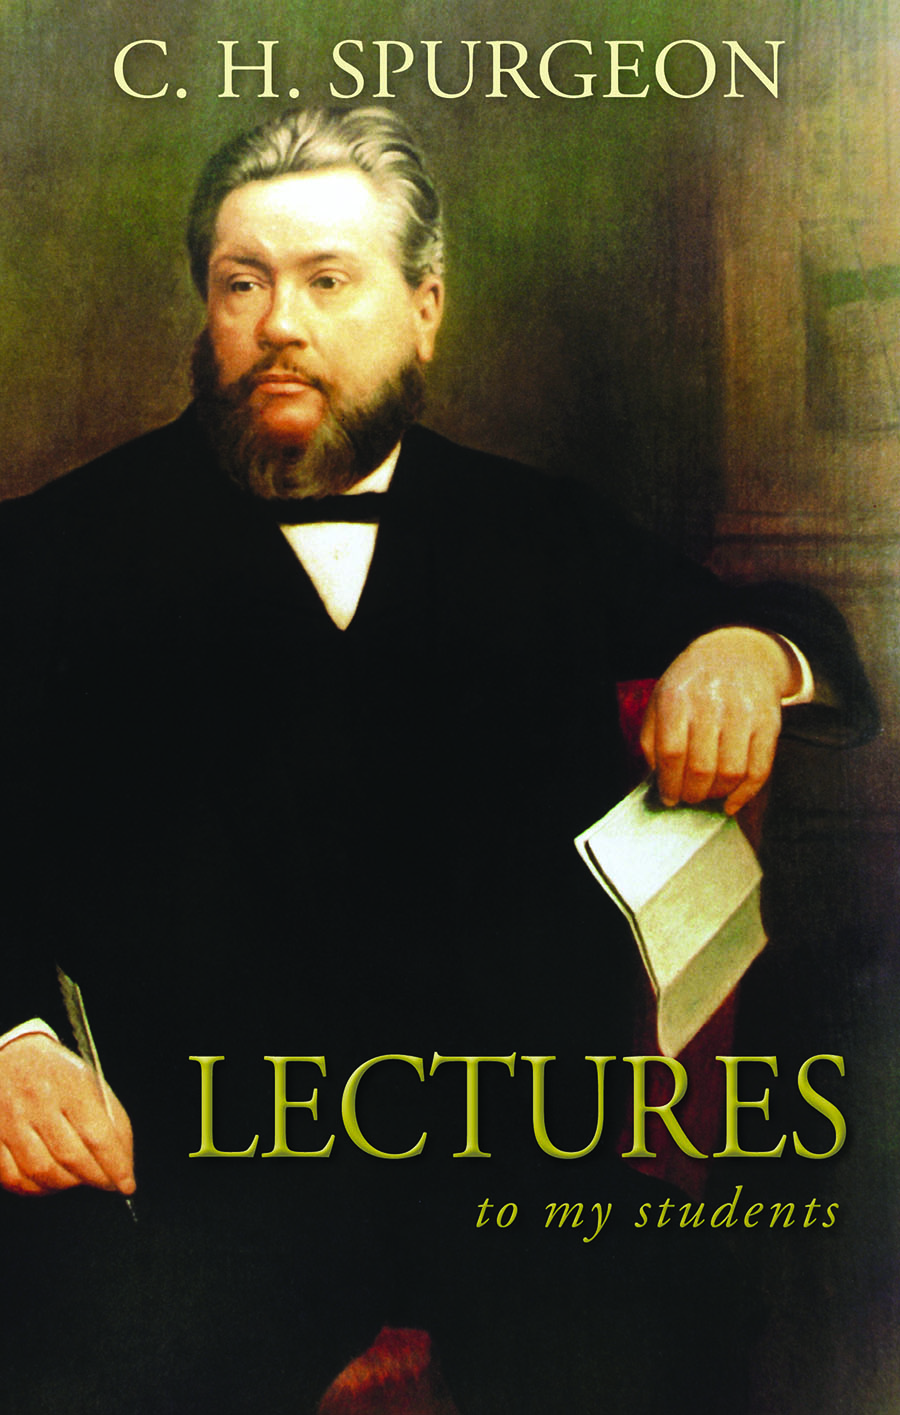 Lectures to My Students